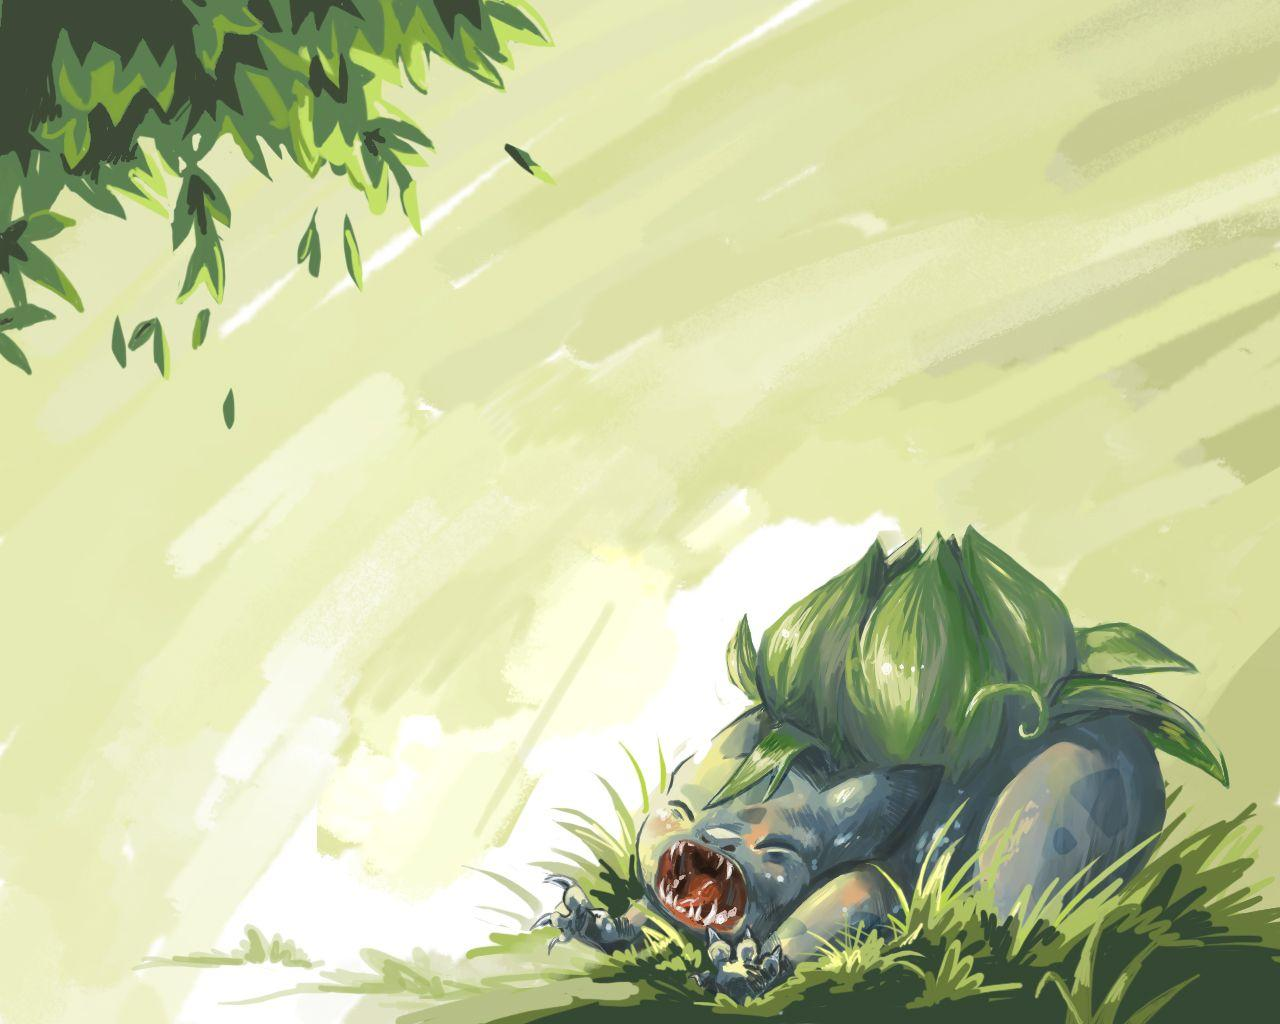 Bulbasaur - Pokémon - Wallpaper #473247 - Zerochan Anime Image Board